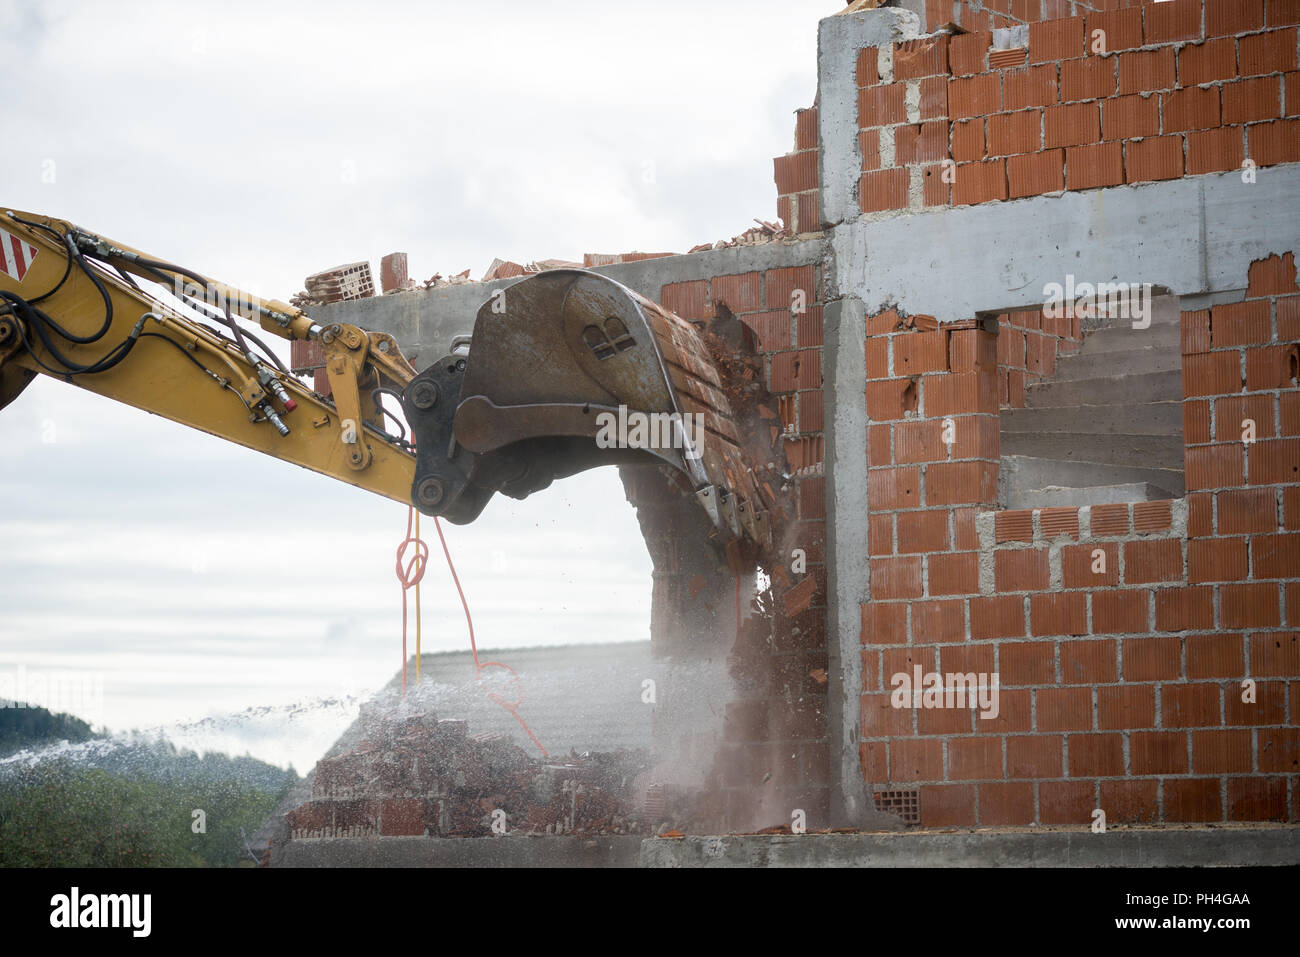 View of the hydraulic arm and bucket of a large heavy duty backhoe demolishing a brick house breaking down the exterior wall for removal. Stock Photo